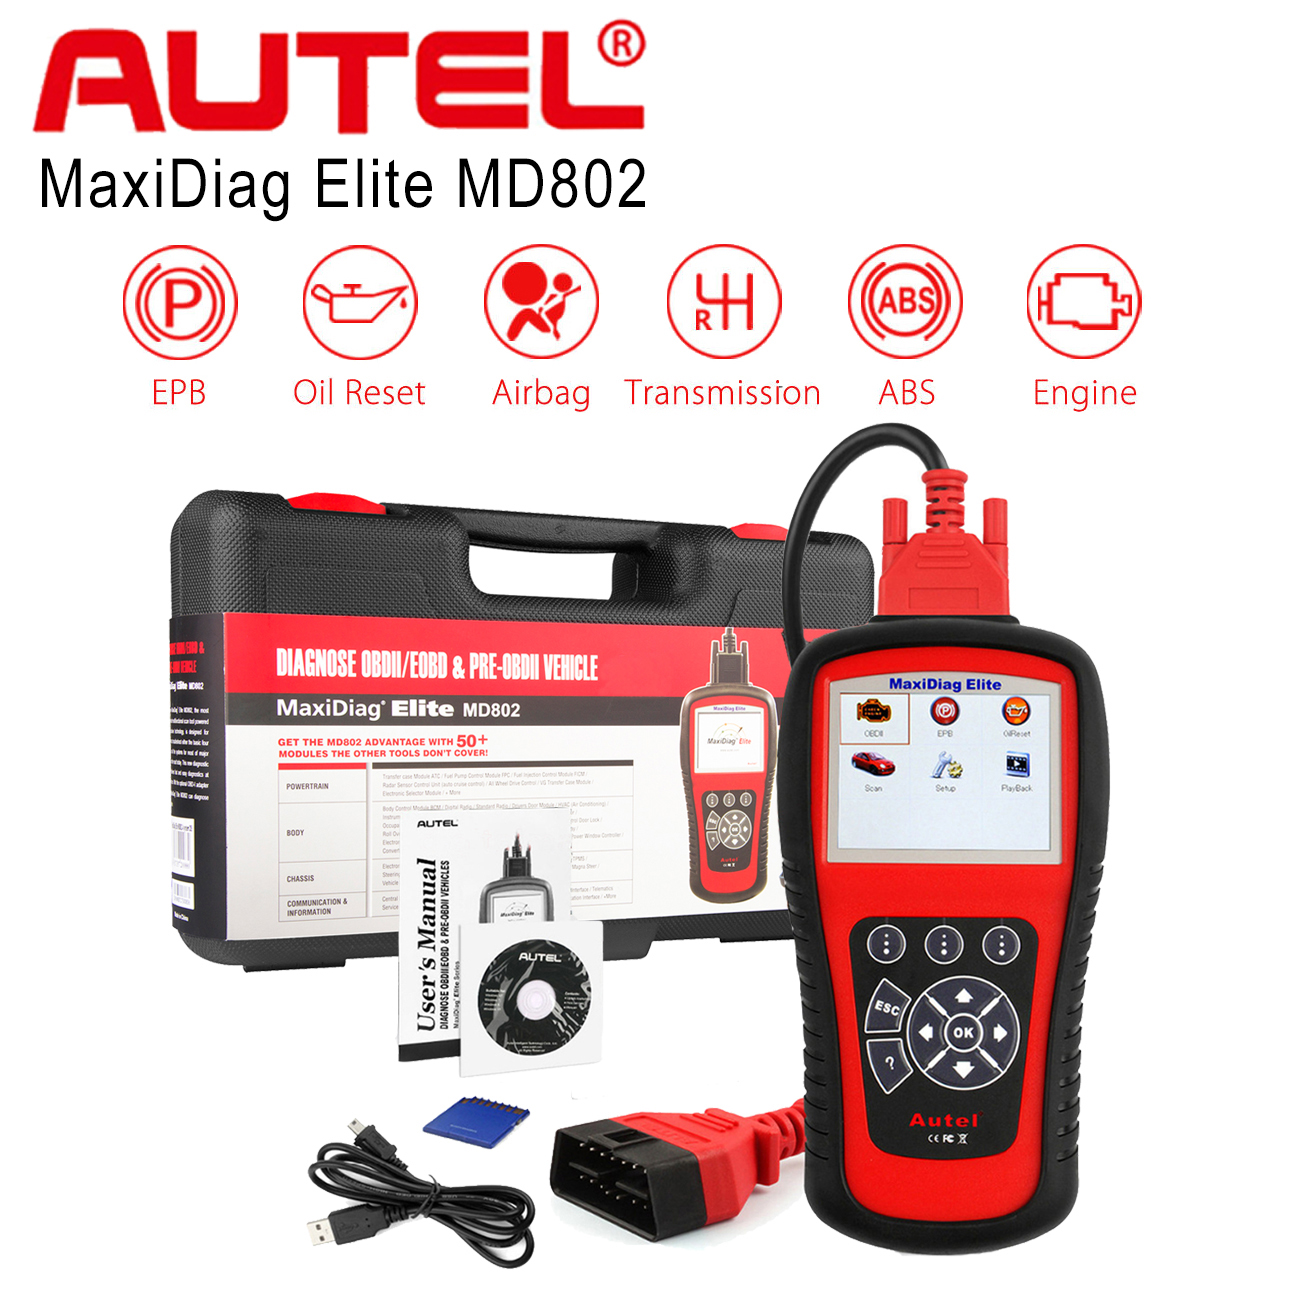 EPB SRS Transmission Autel Maxidiag Elite MD802 Full System Scanner OBD2 Diagnoses for ABS Engine Oil Reset